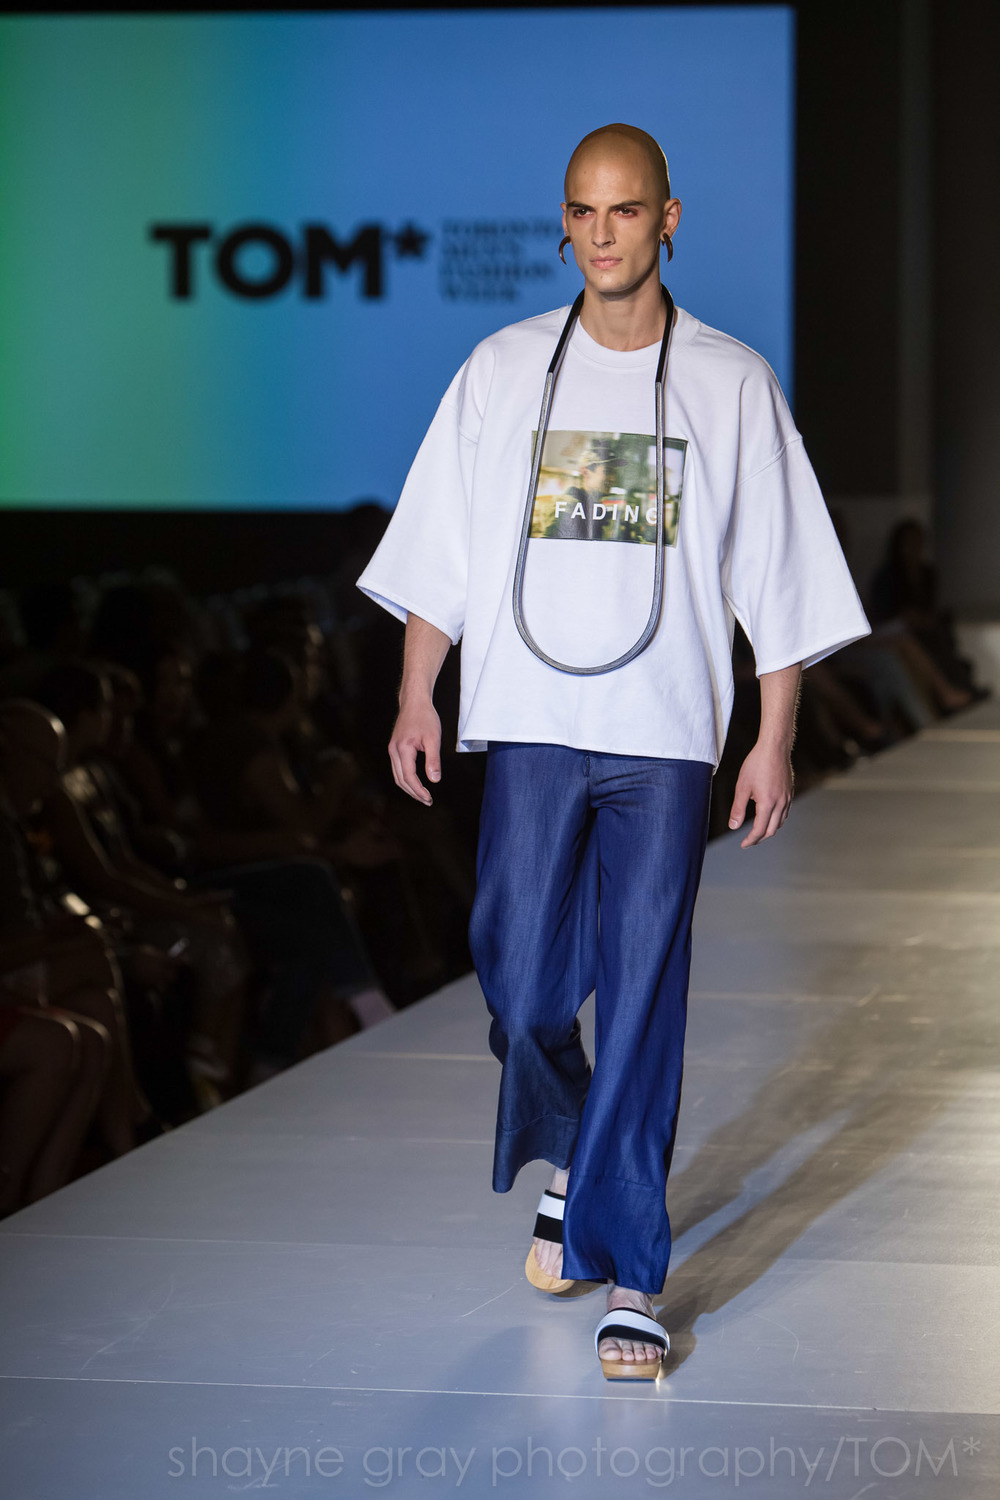 Shayne-Gray-Toronto-men's-fashion_week-TOM-wrkdept-8705.jpg